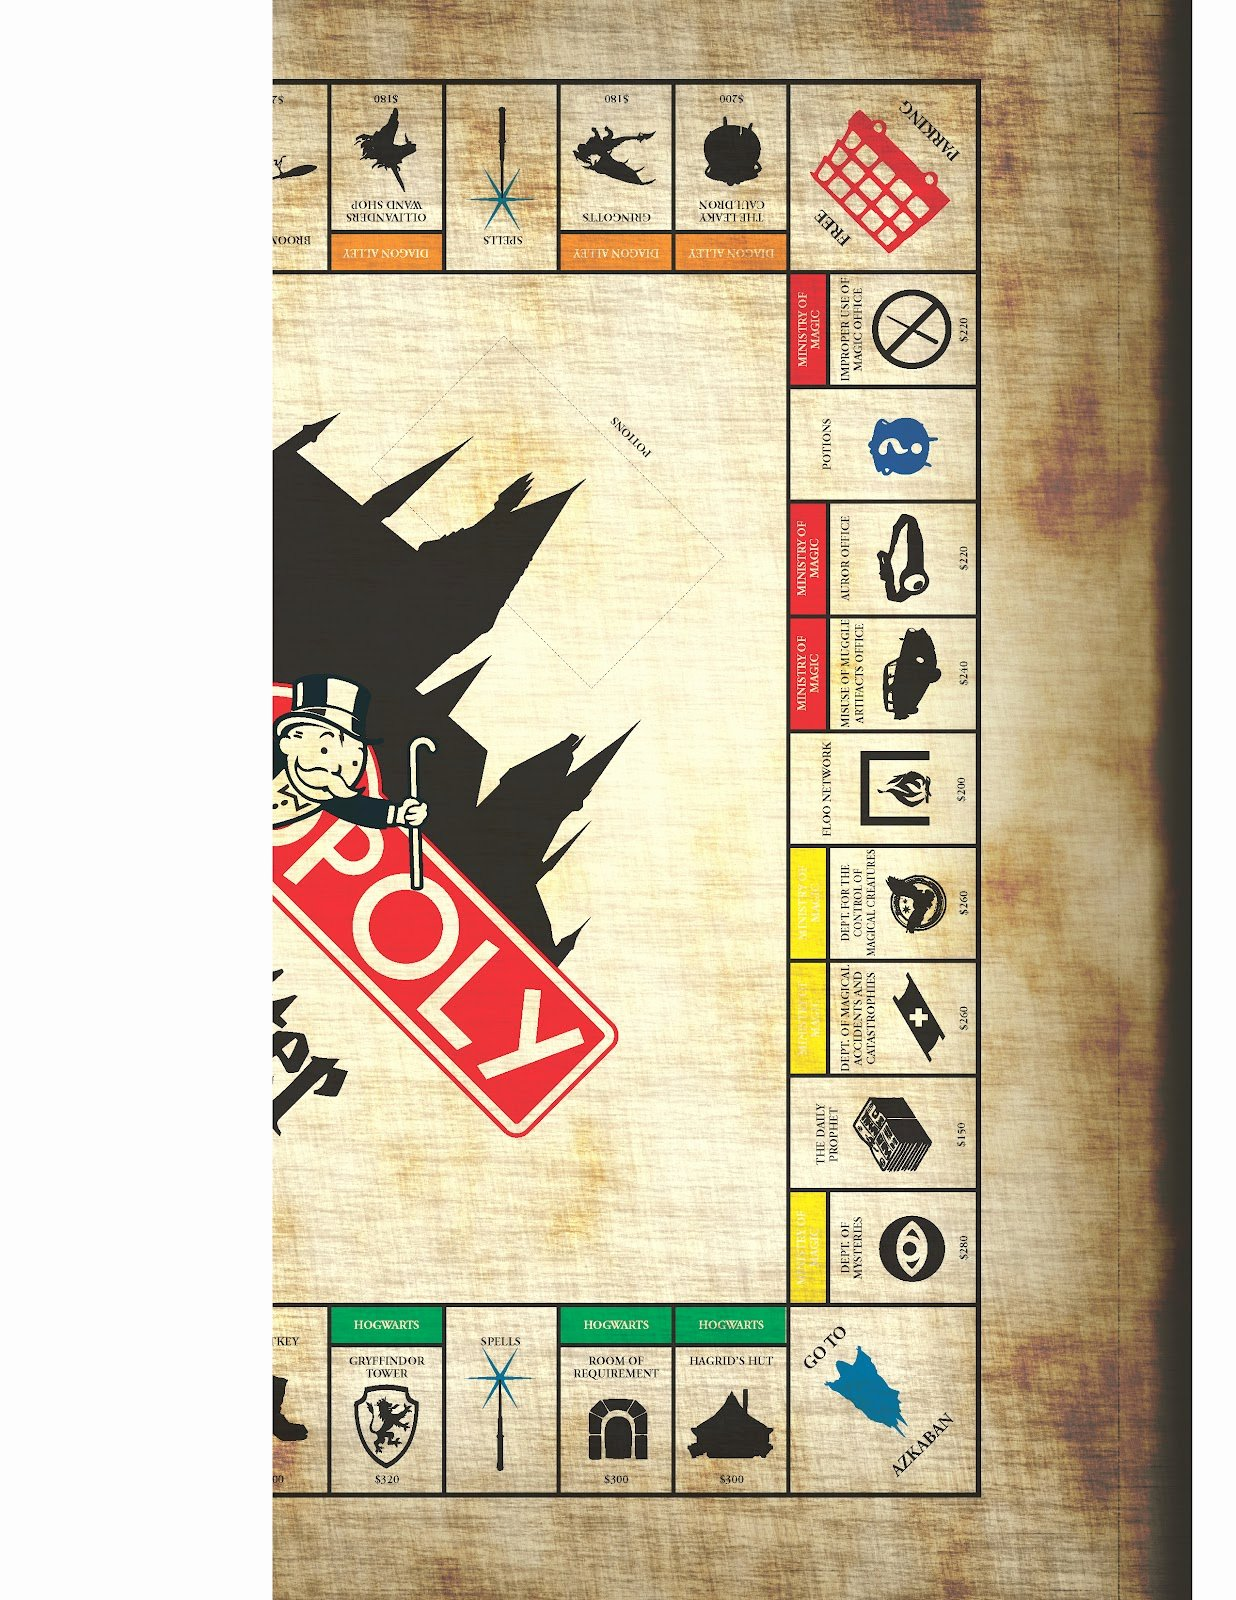 Monopoly Board Printable Fresh Design Technology Education How to Make Harry Potter